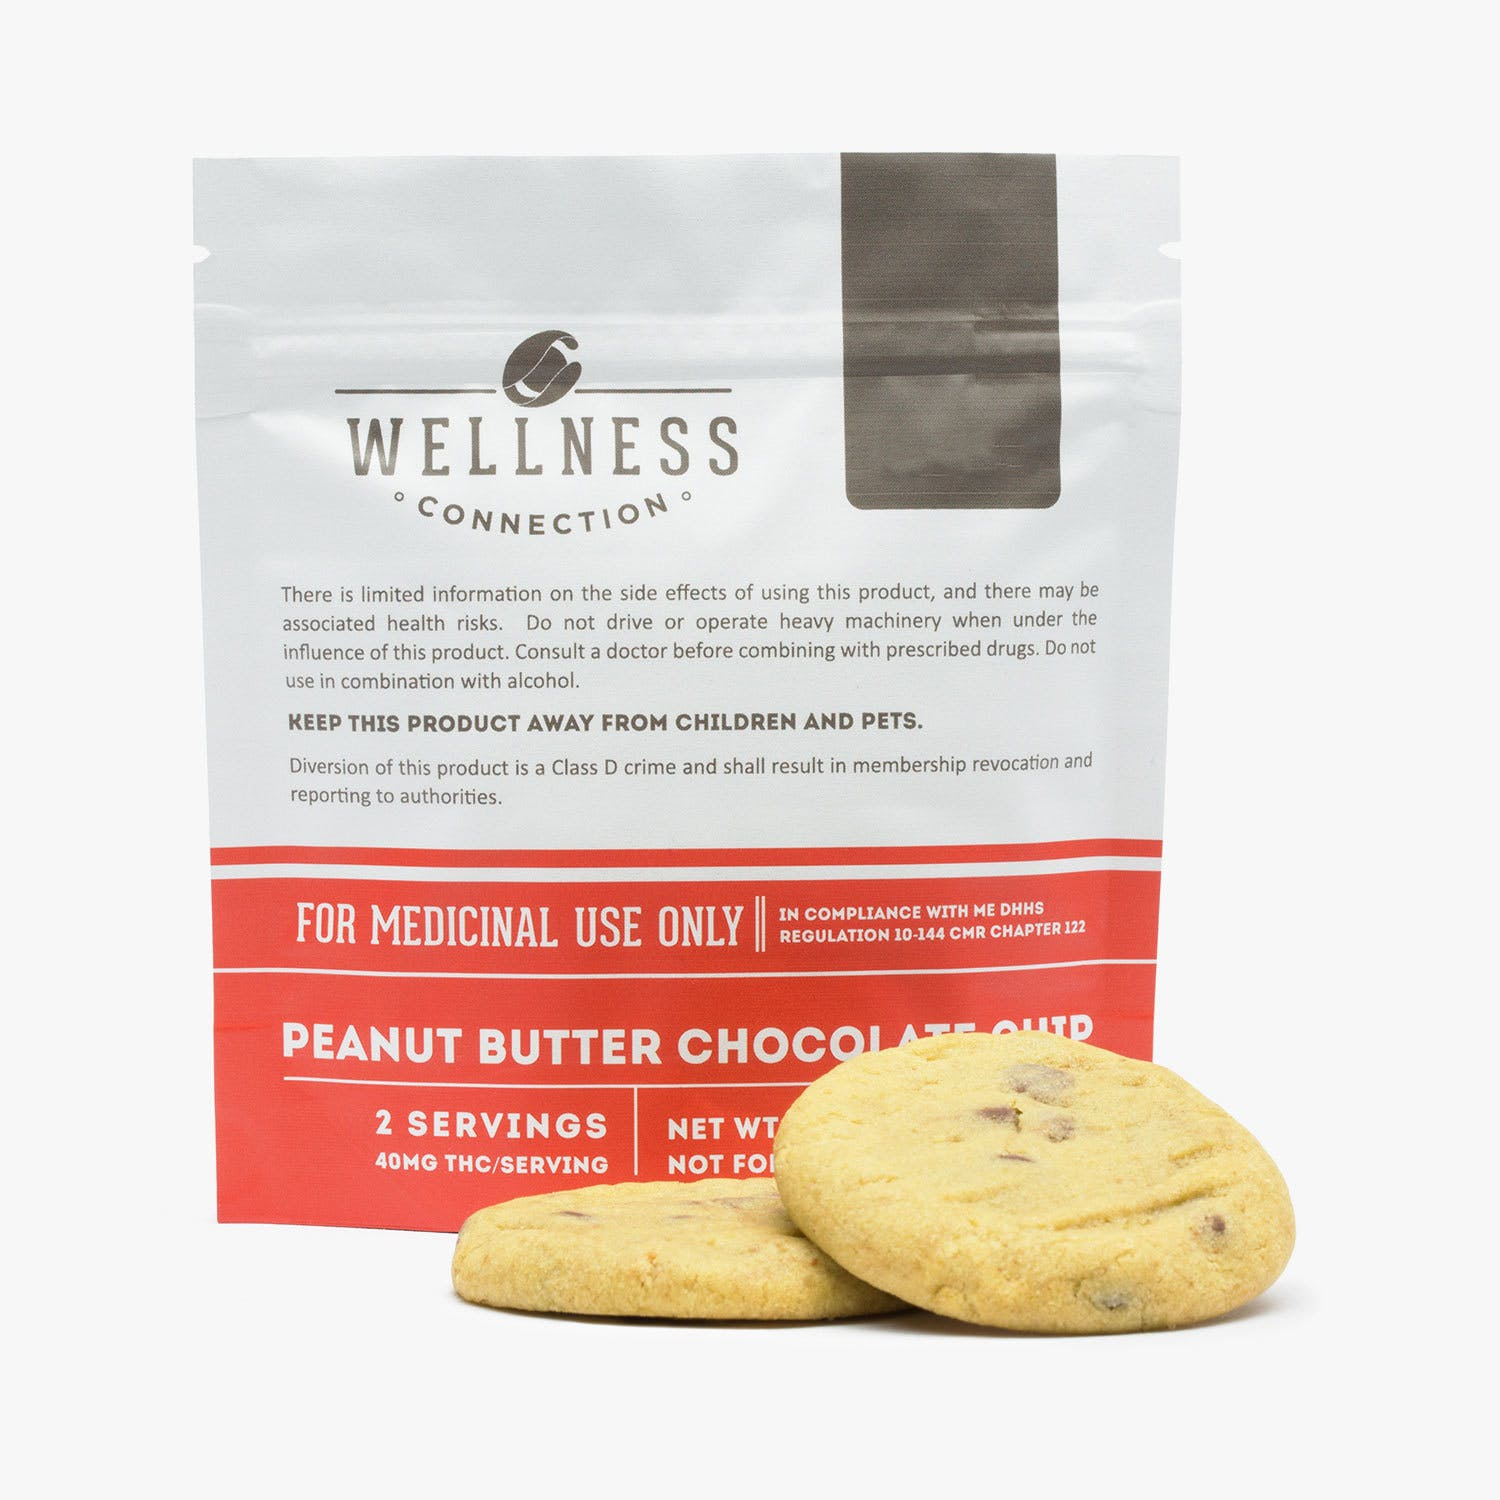 Peanut Butter Chocolate Chip Cookies—80mg